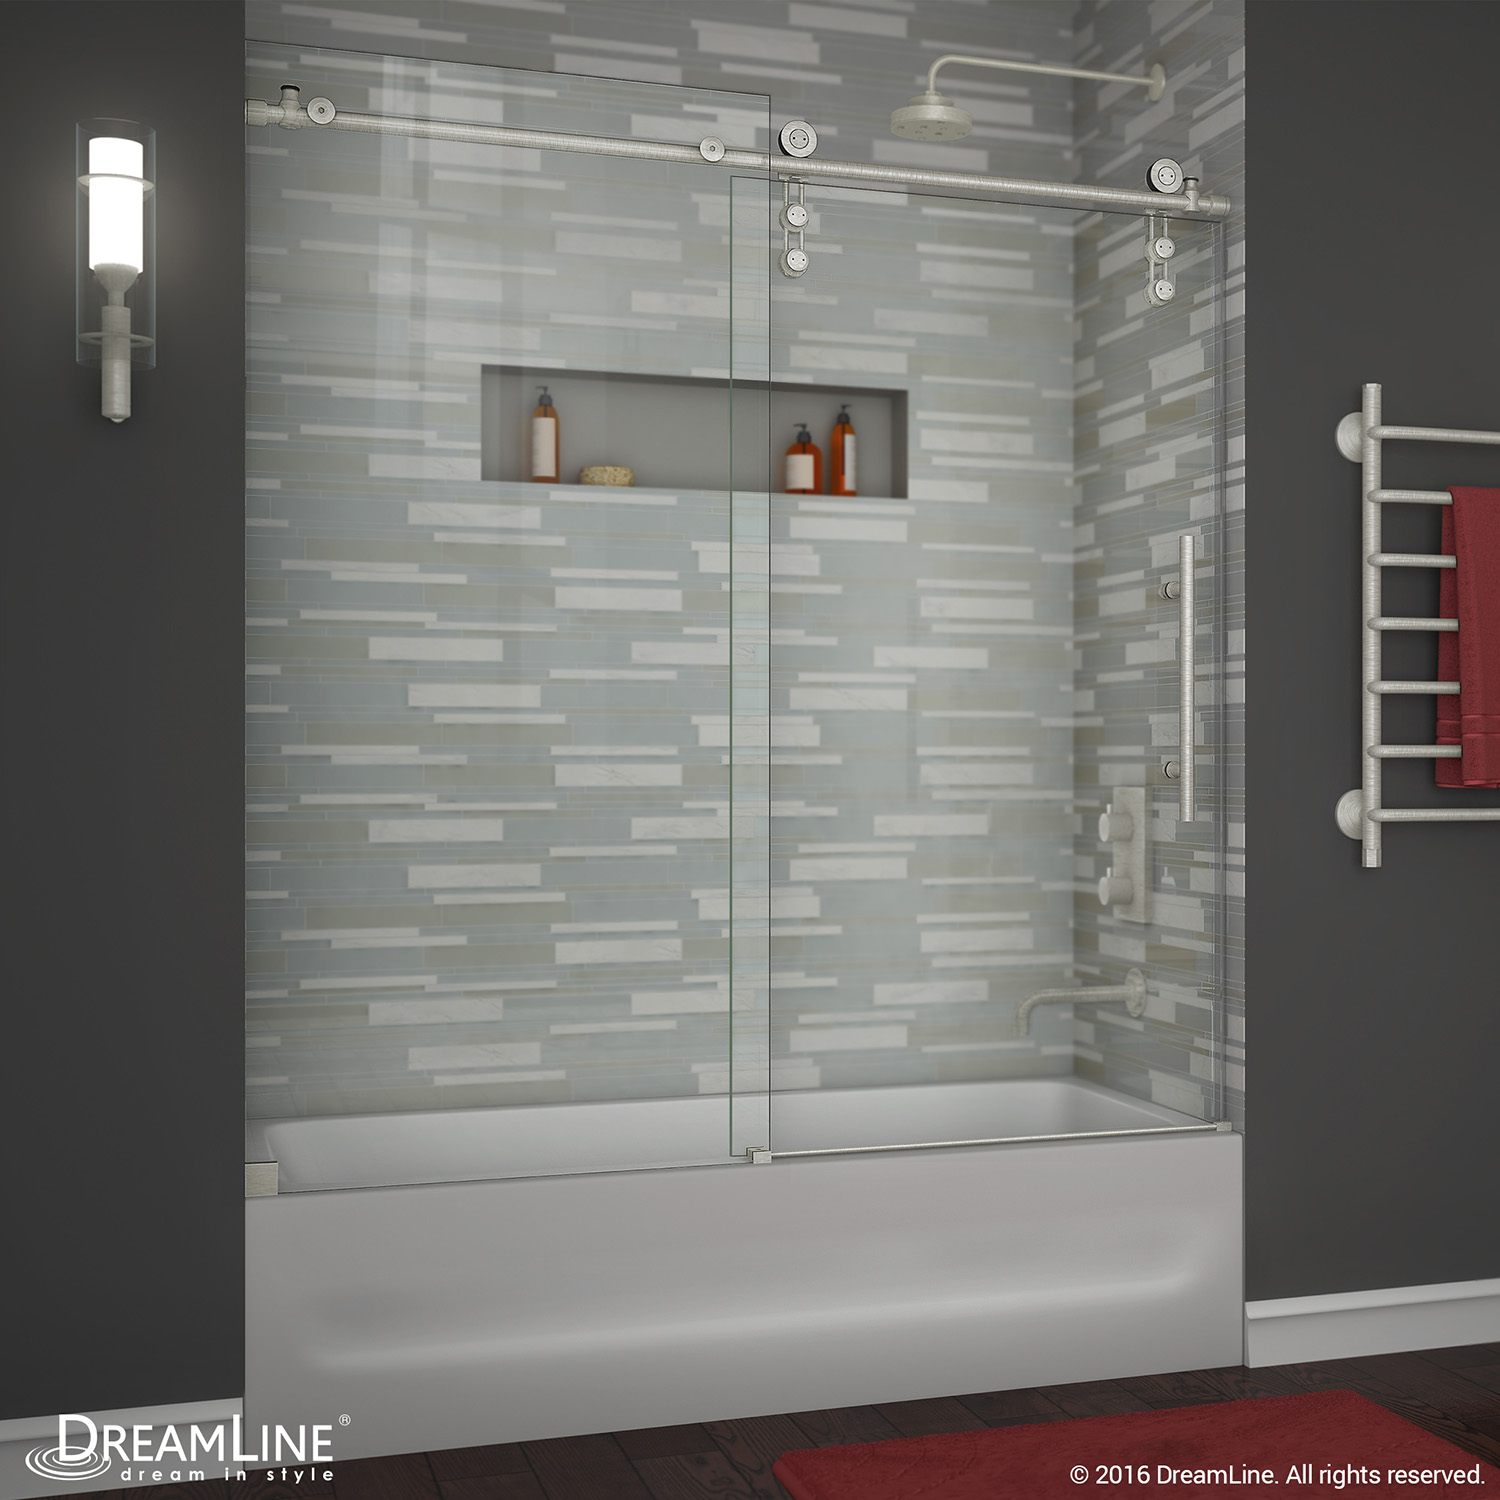 Dreamline Shdr 6260620 07 Enigma Z 56 59 Sliding Tub Door